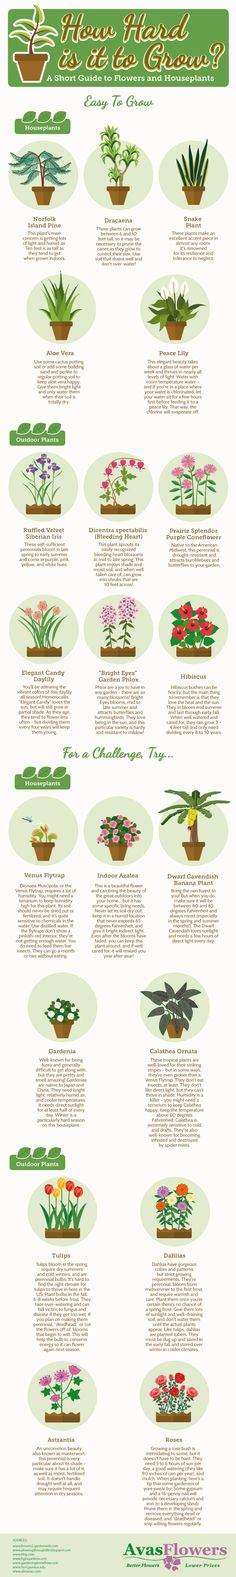 How Hard is it to Grow? - Avasflowers.net - Infographic title=